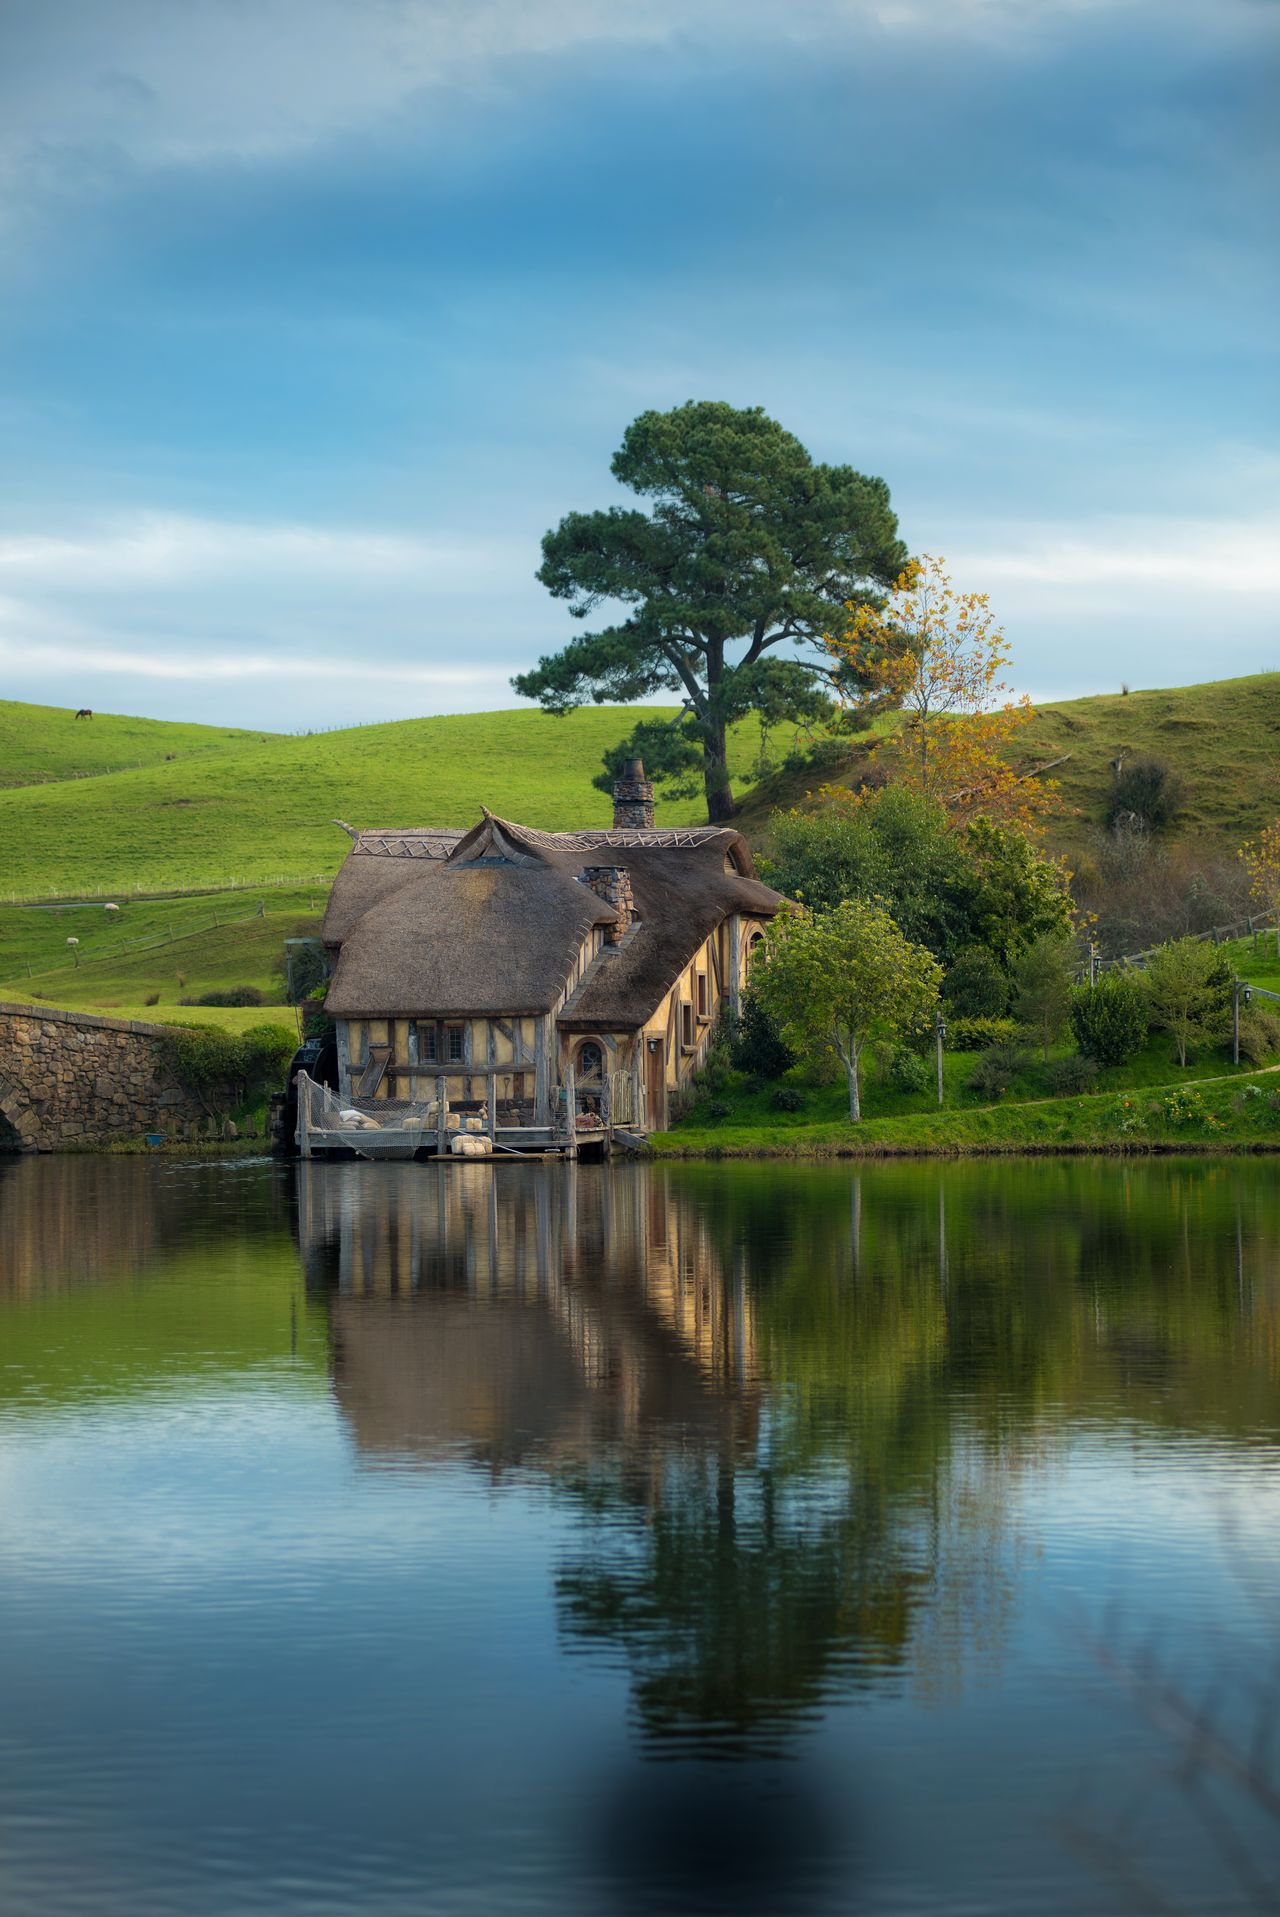 Water Lake Reflection Agriculture Built Structure Architecture Outdoors Nature Rural Scene Building Exterior Sky No People Day Watermill Tree Newzealandoutdoors Newzealandphotography Newzealand Beauty In Nature Architecture Nature First Eyeem Photo Cloud - Sky